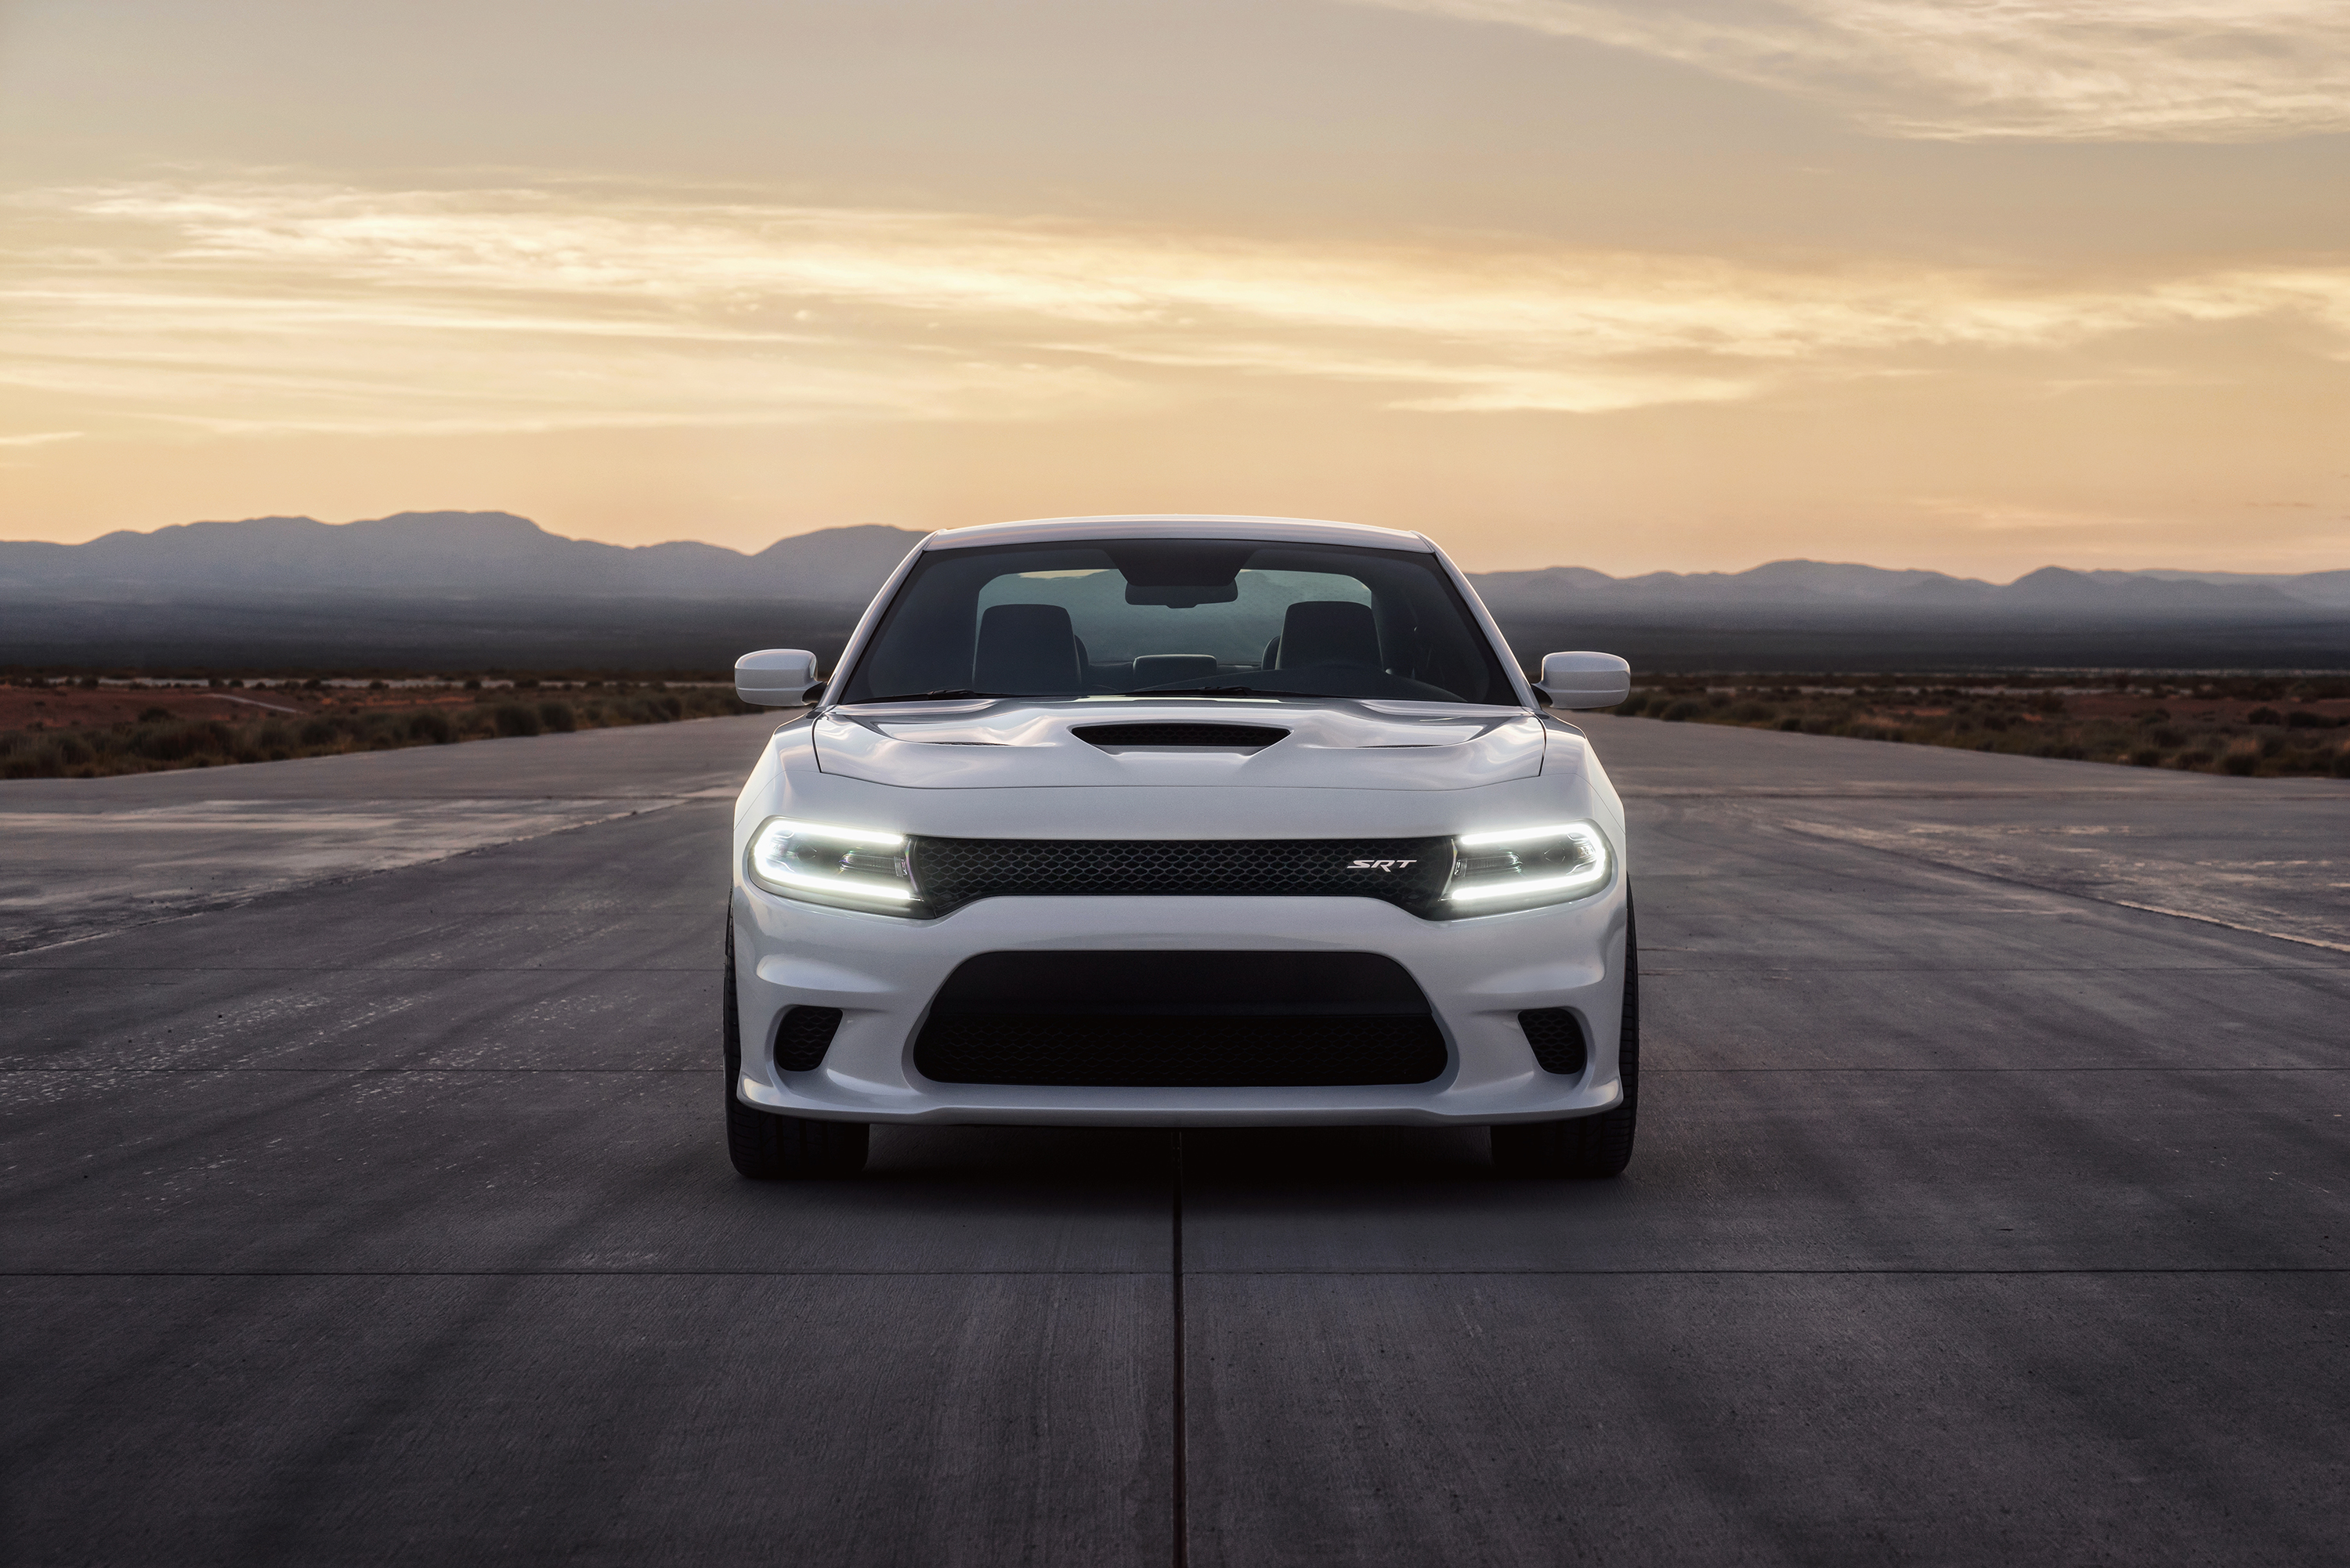 Srt Hellcat >> Dodge Charger SRT Hellcat – 707 hp V8 muscle saloon Image 263830